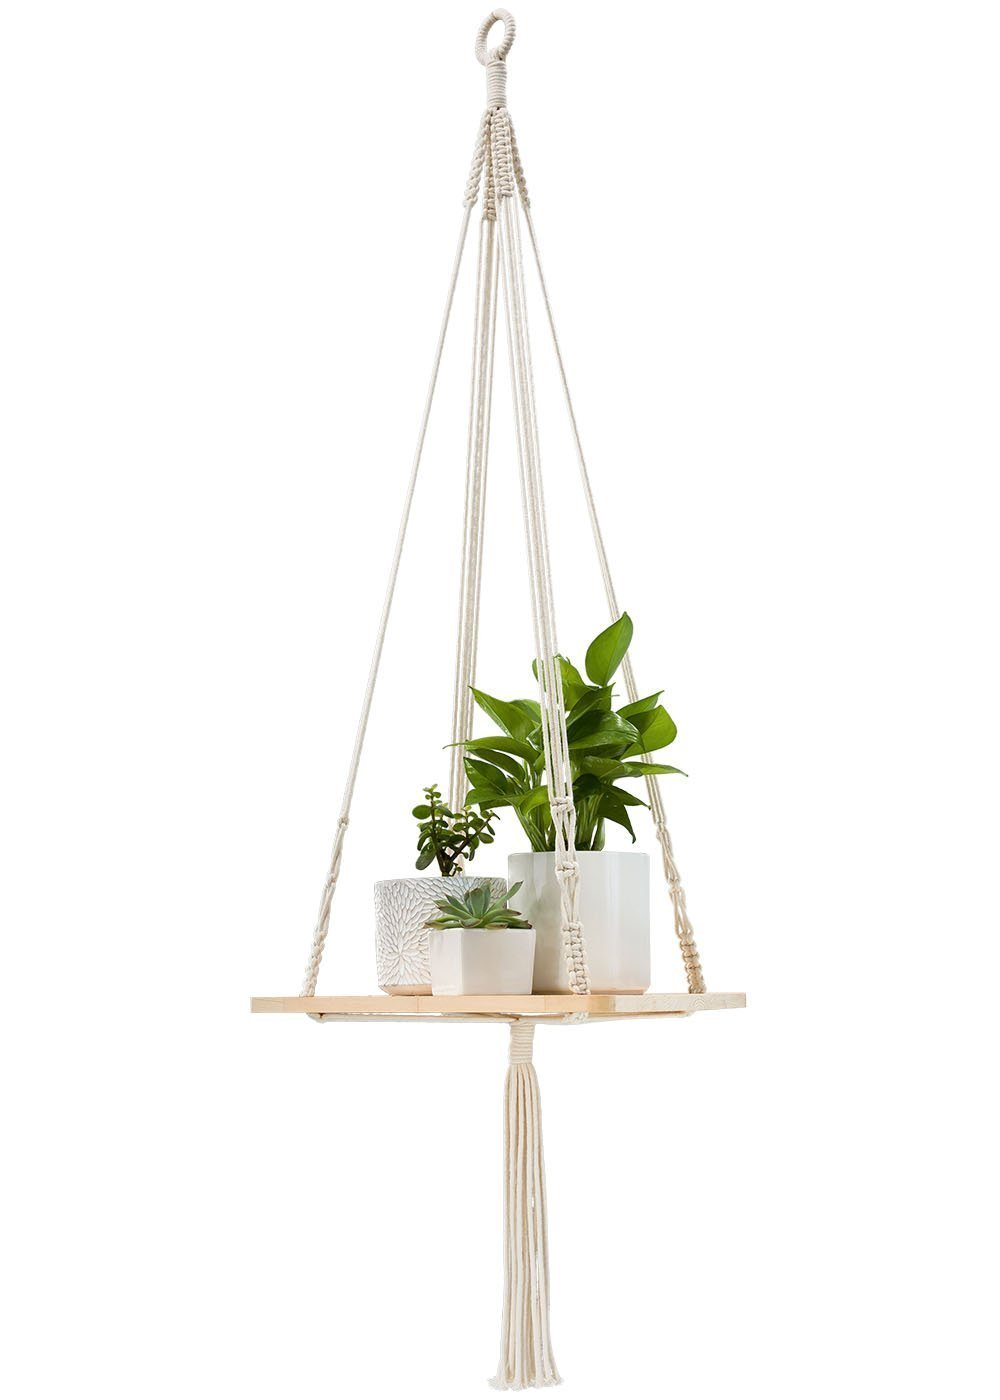 Macrame Hanging Shelf | Amazon